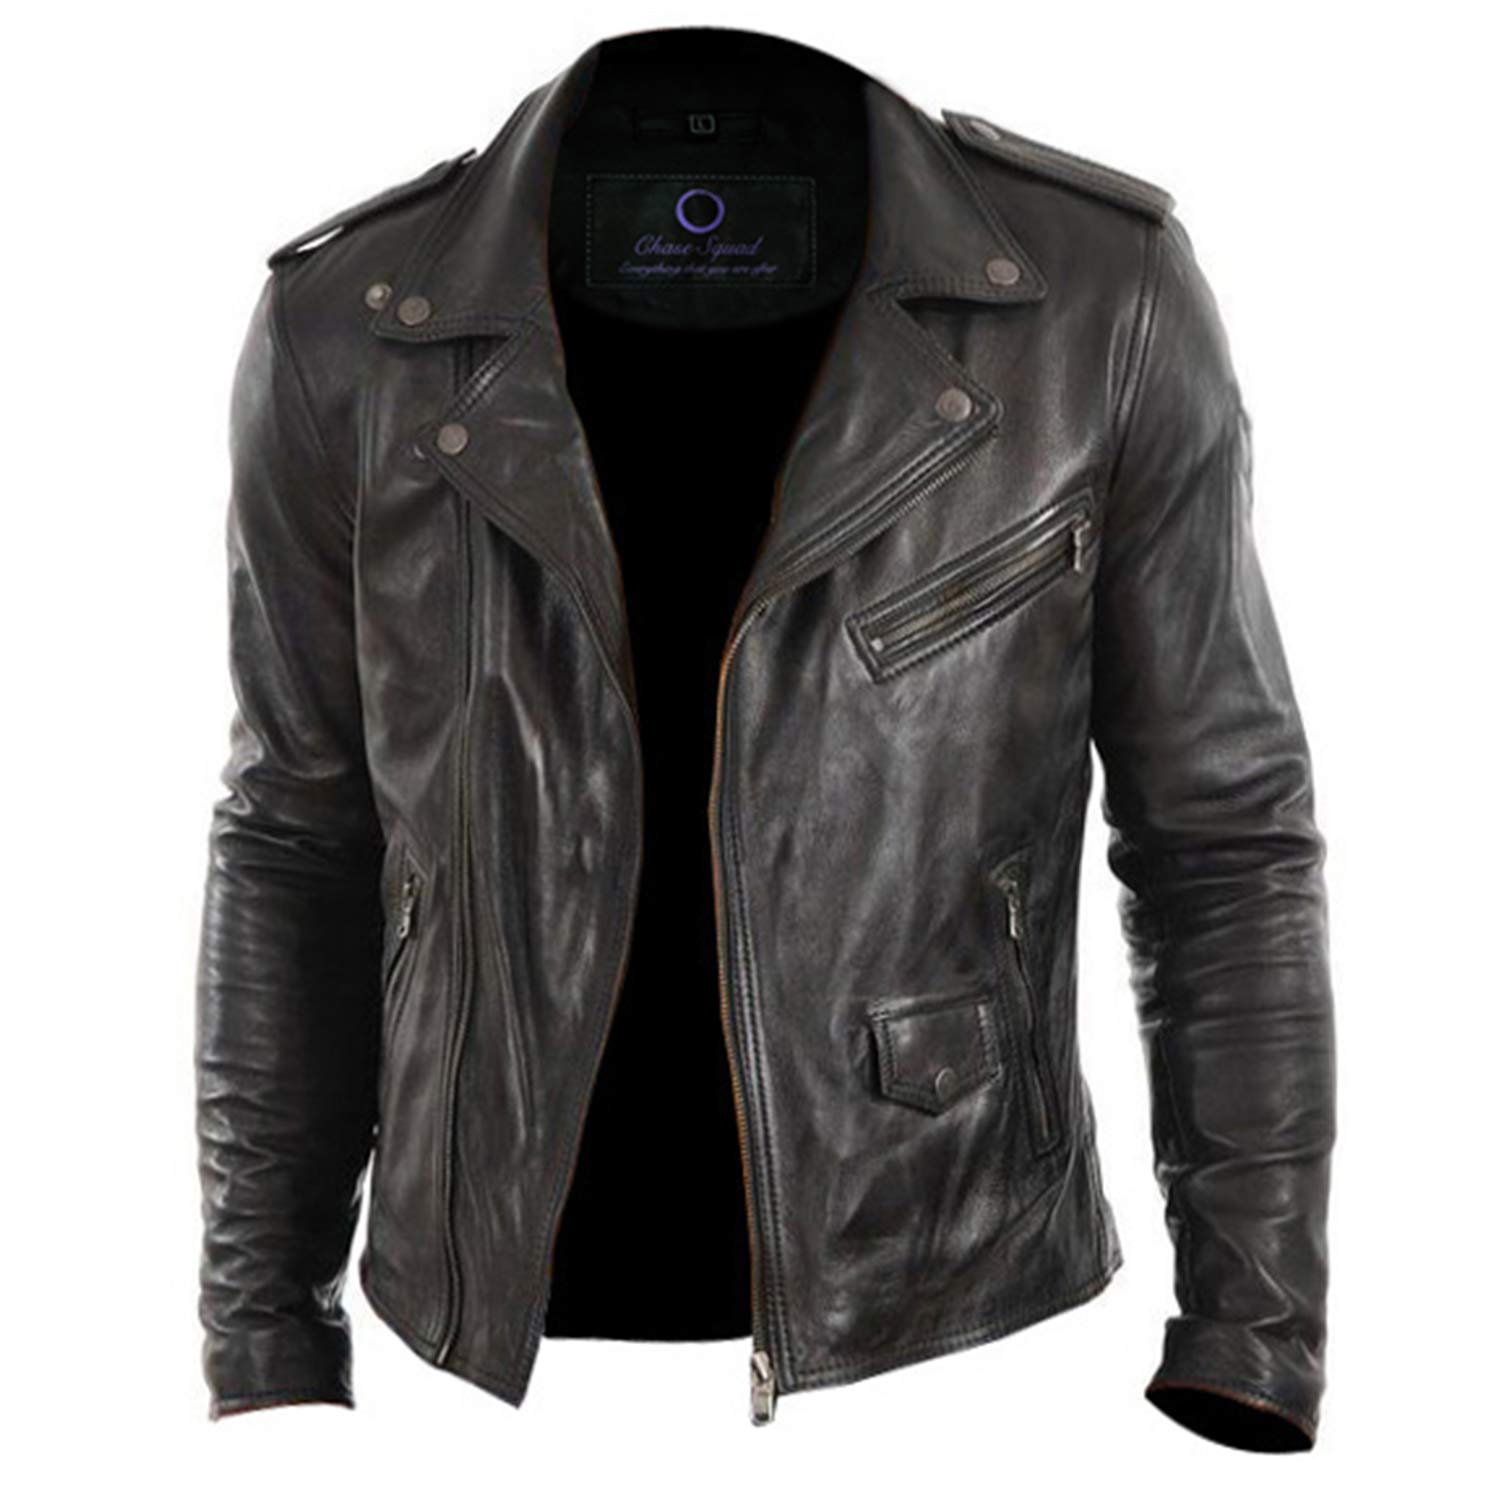 24e25f36c Chase Squad Tough Look Designer Real Leather Jackets Men - Men's ...